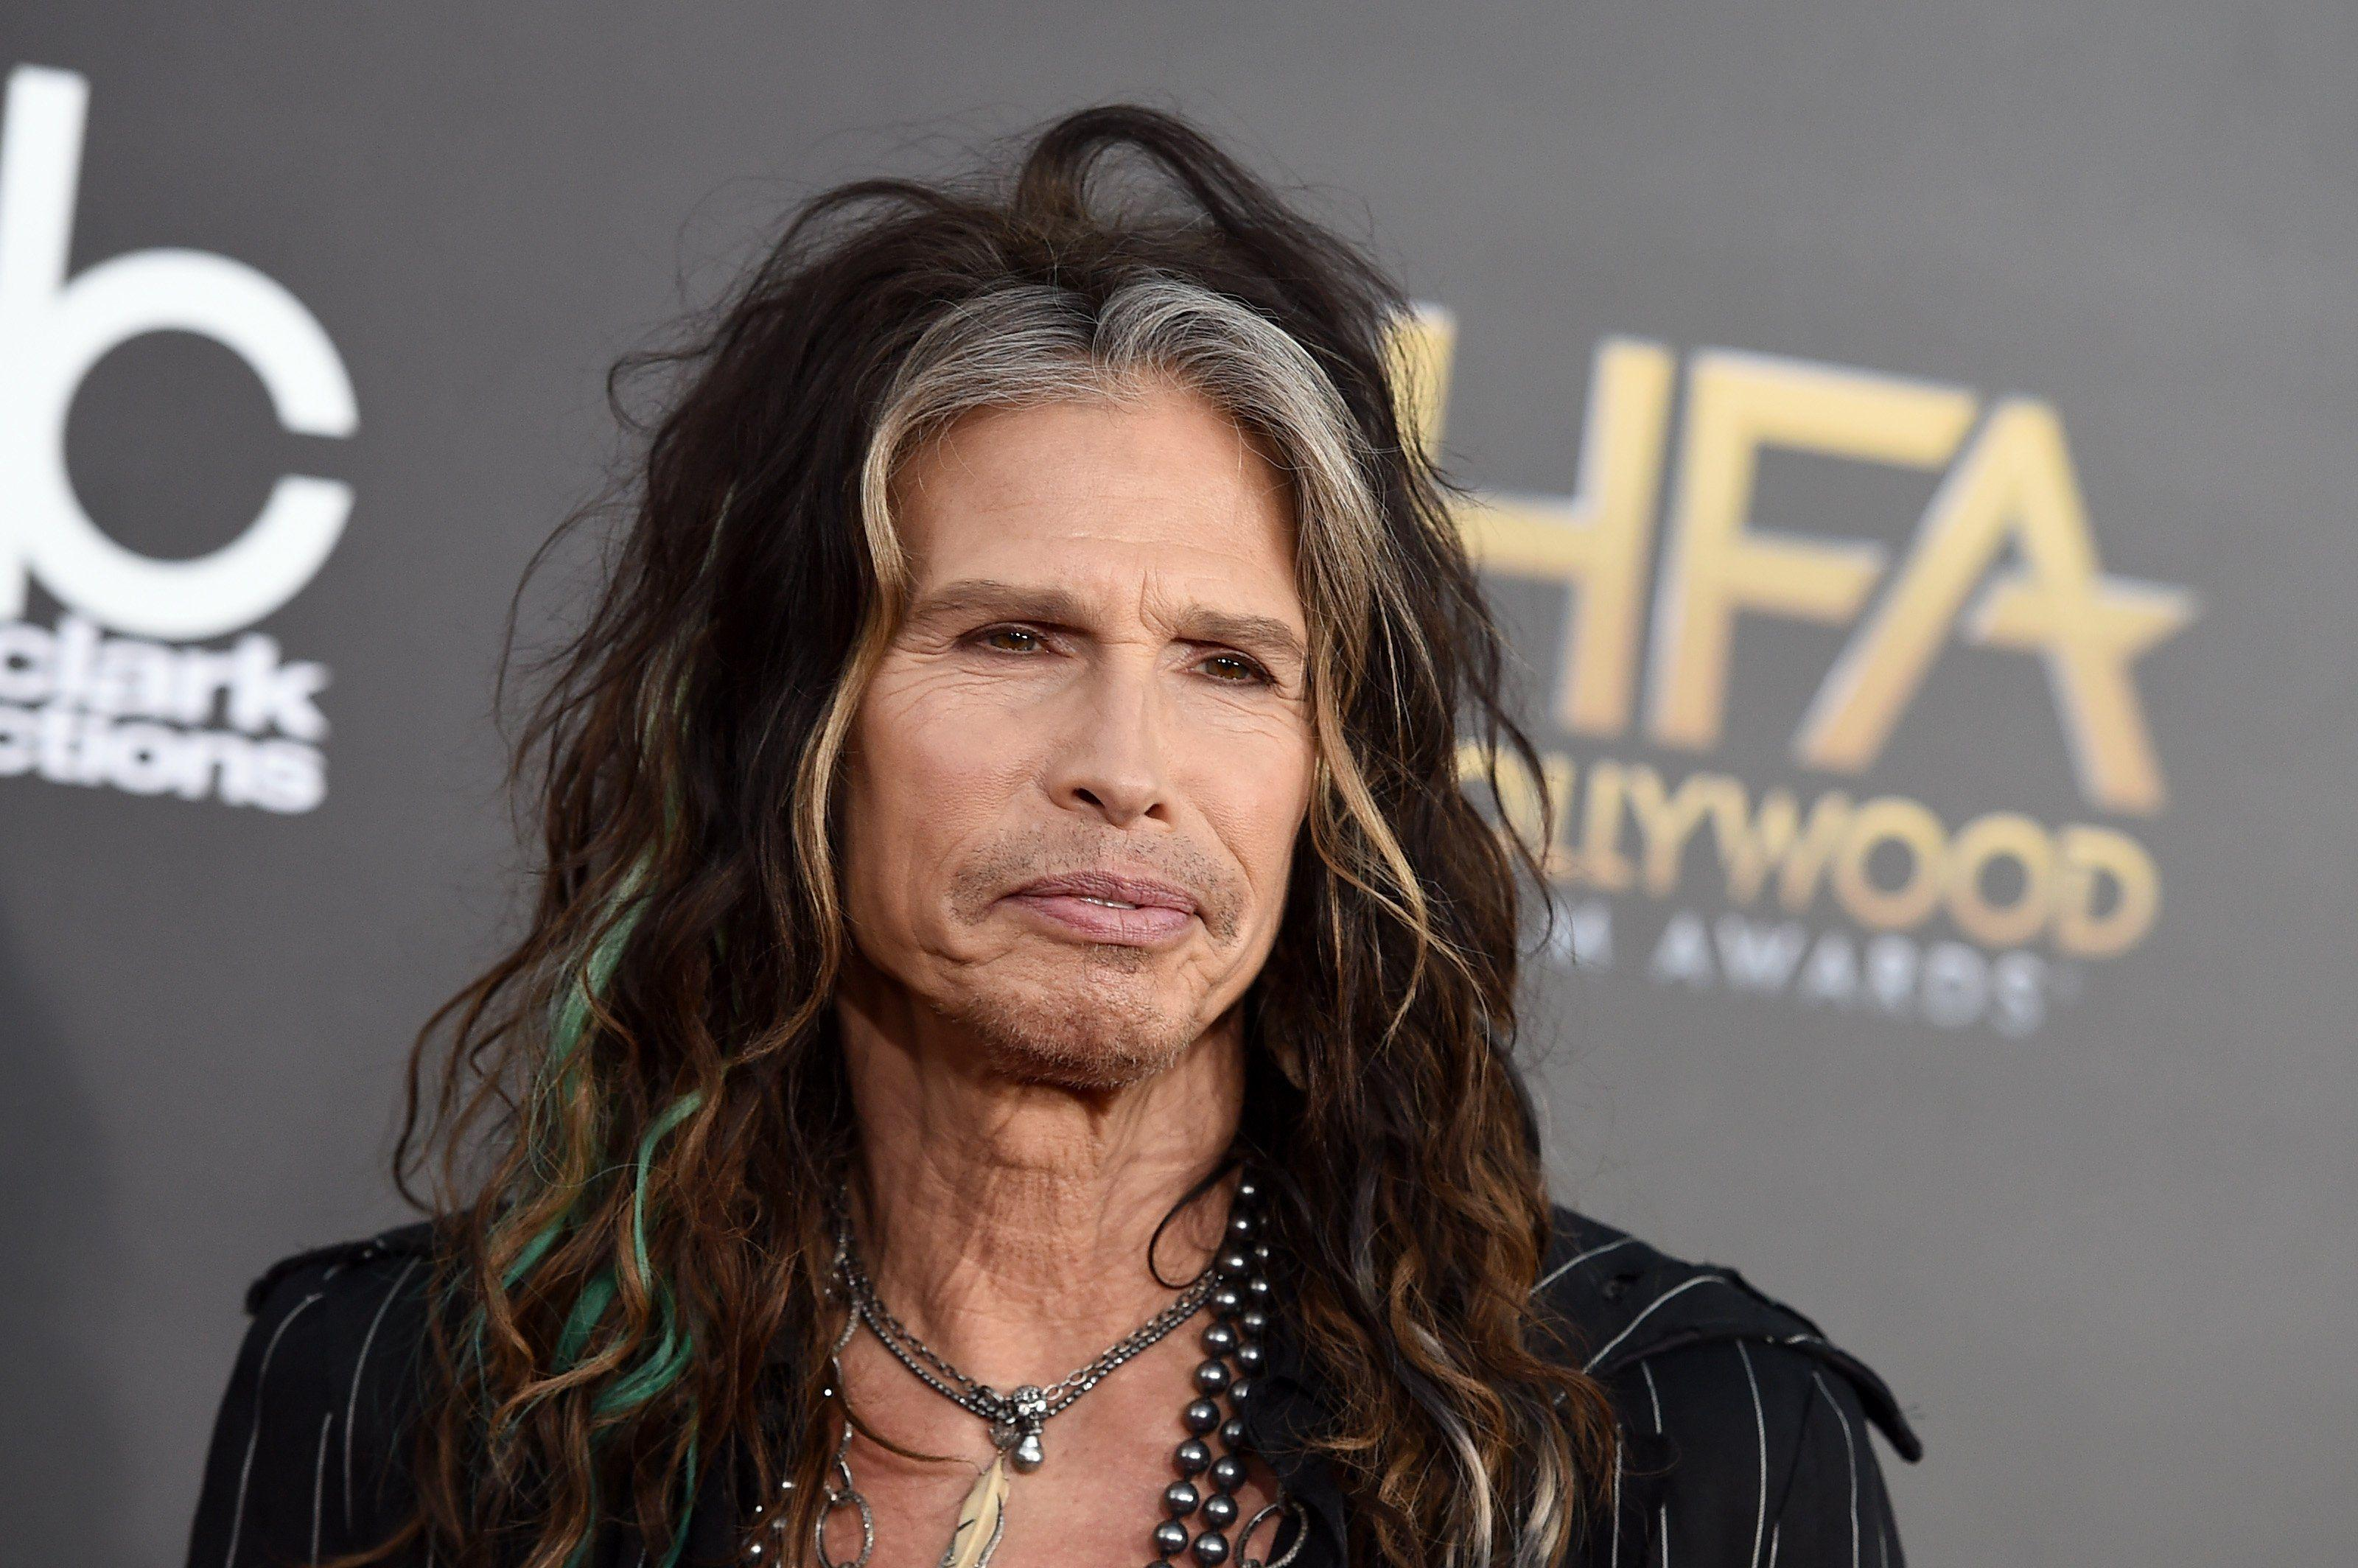 Steven Tyler's Health Issues Force Aerosmith To Cancel Their Tour